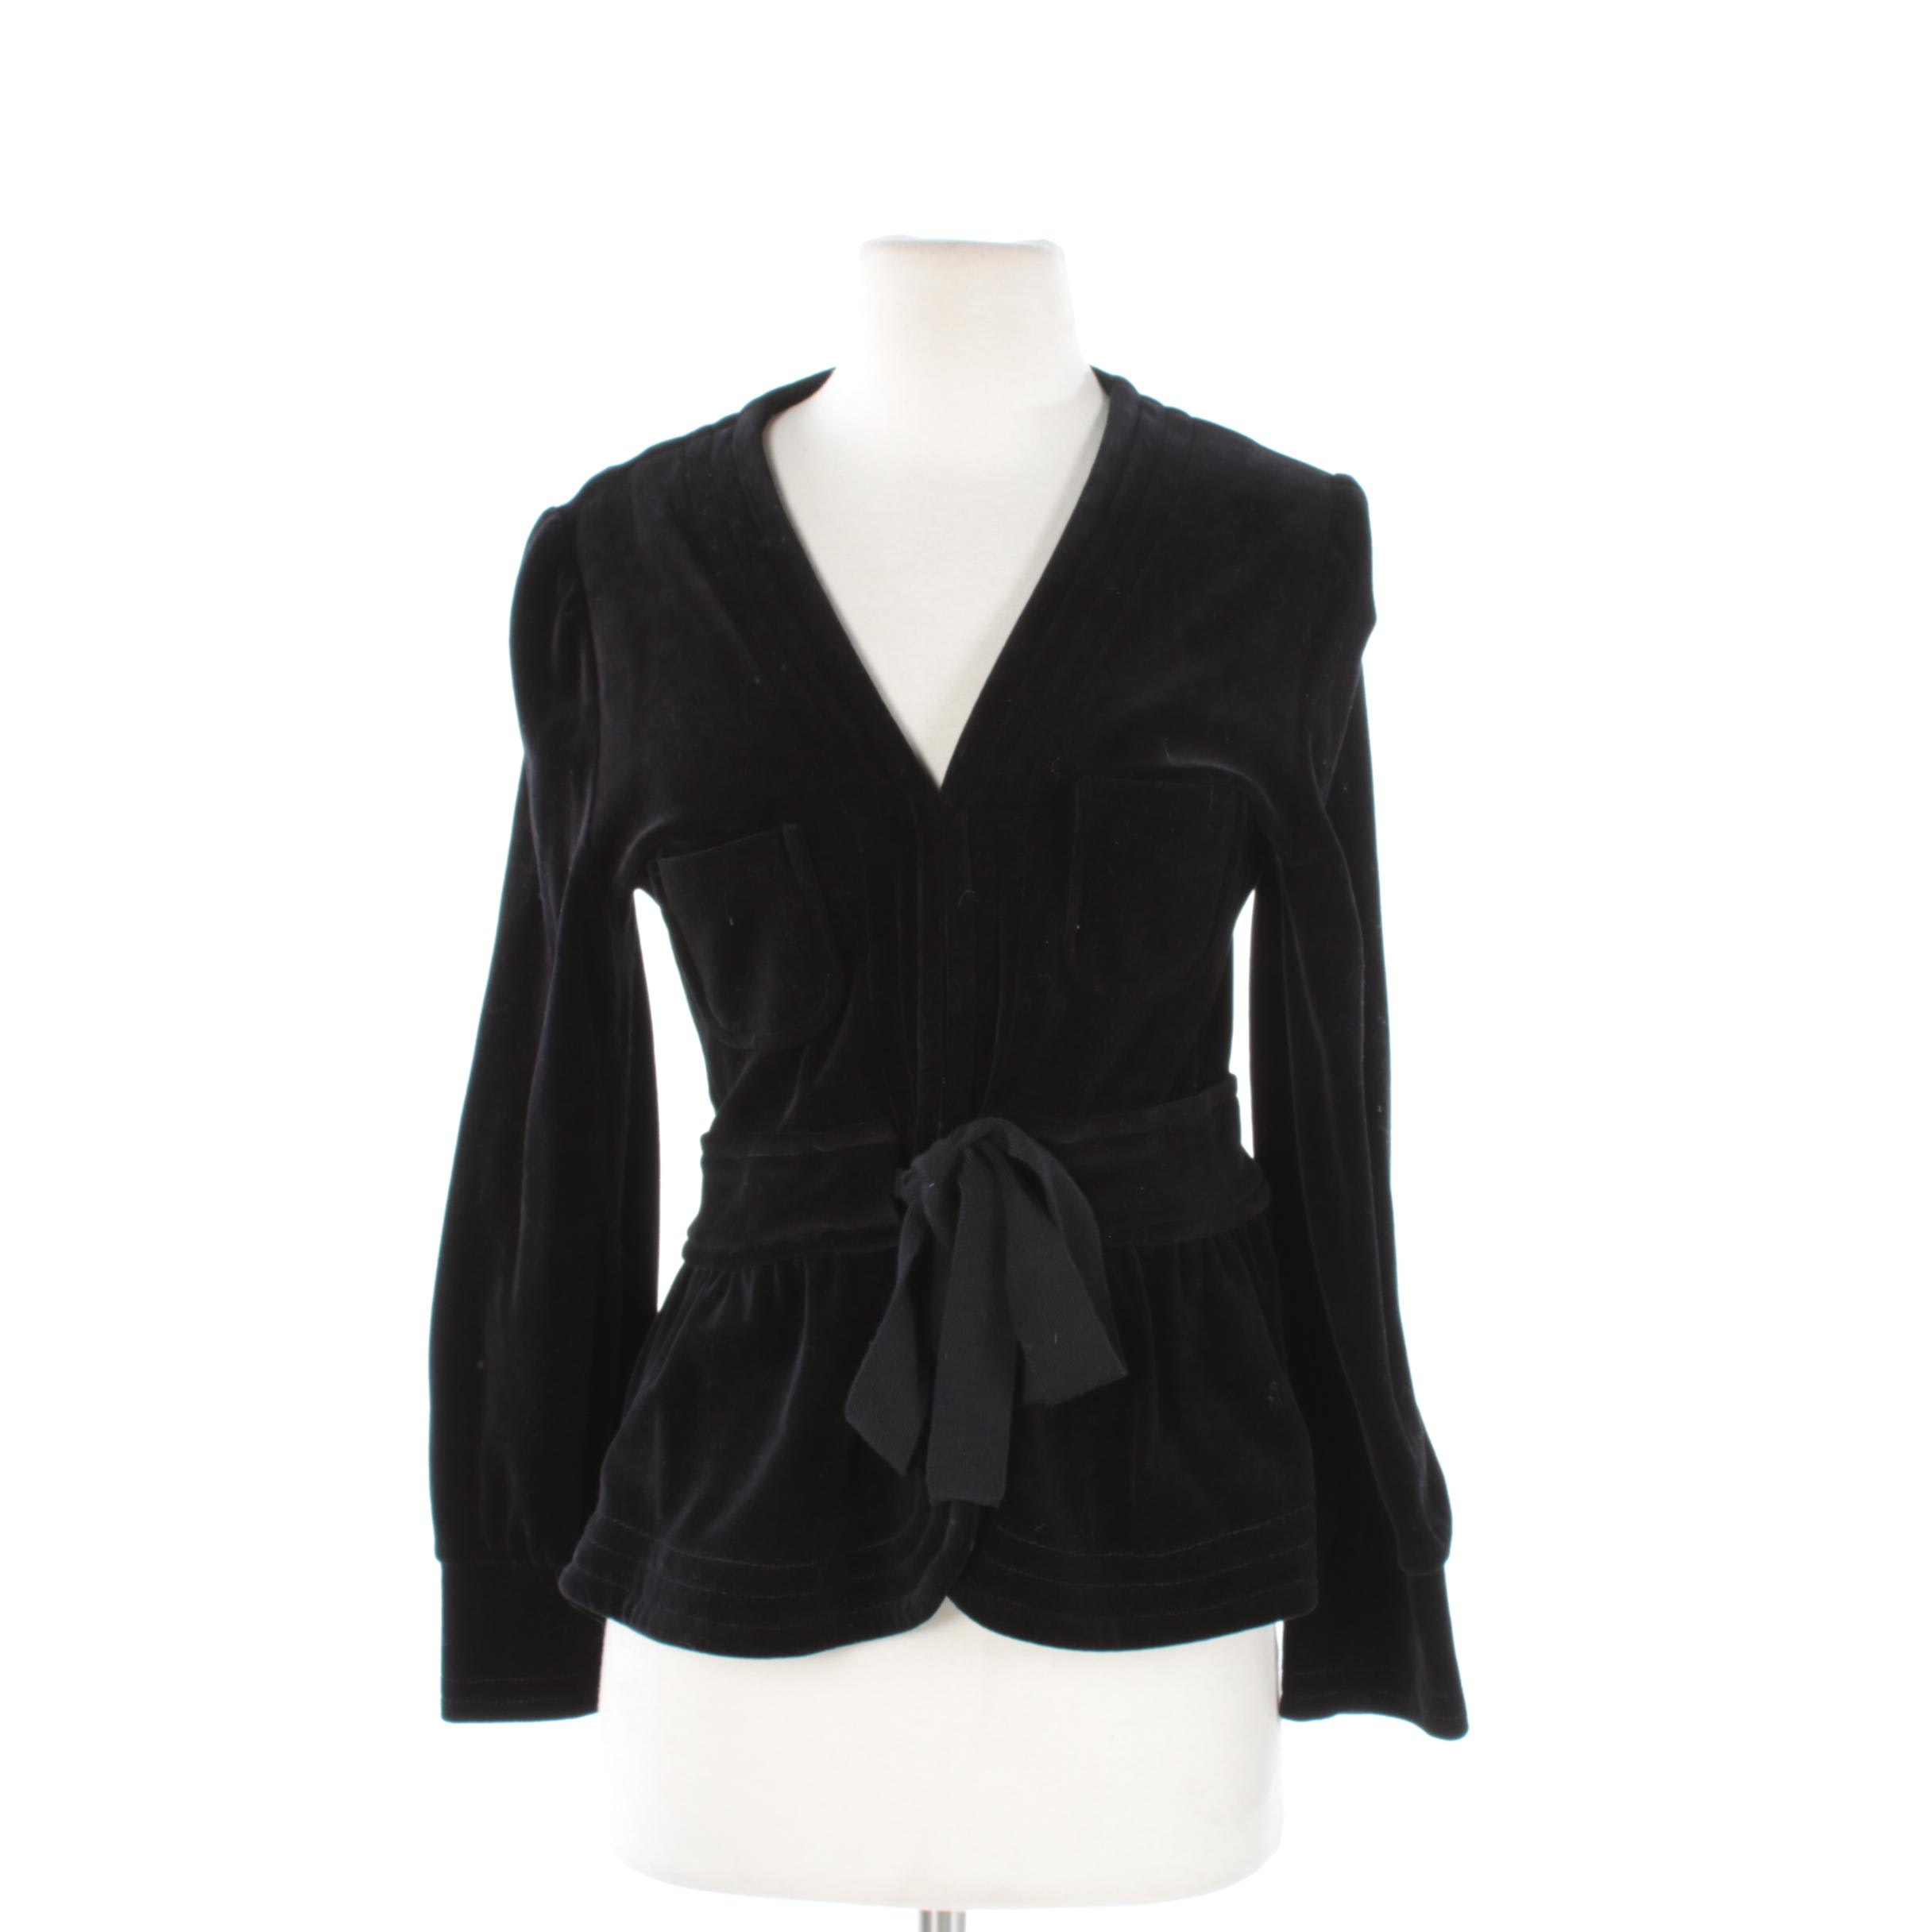 Women's Sonia Rykiel Black Velvet Suit Jacket